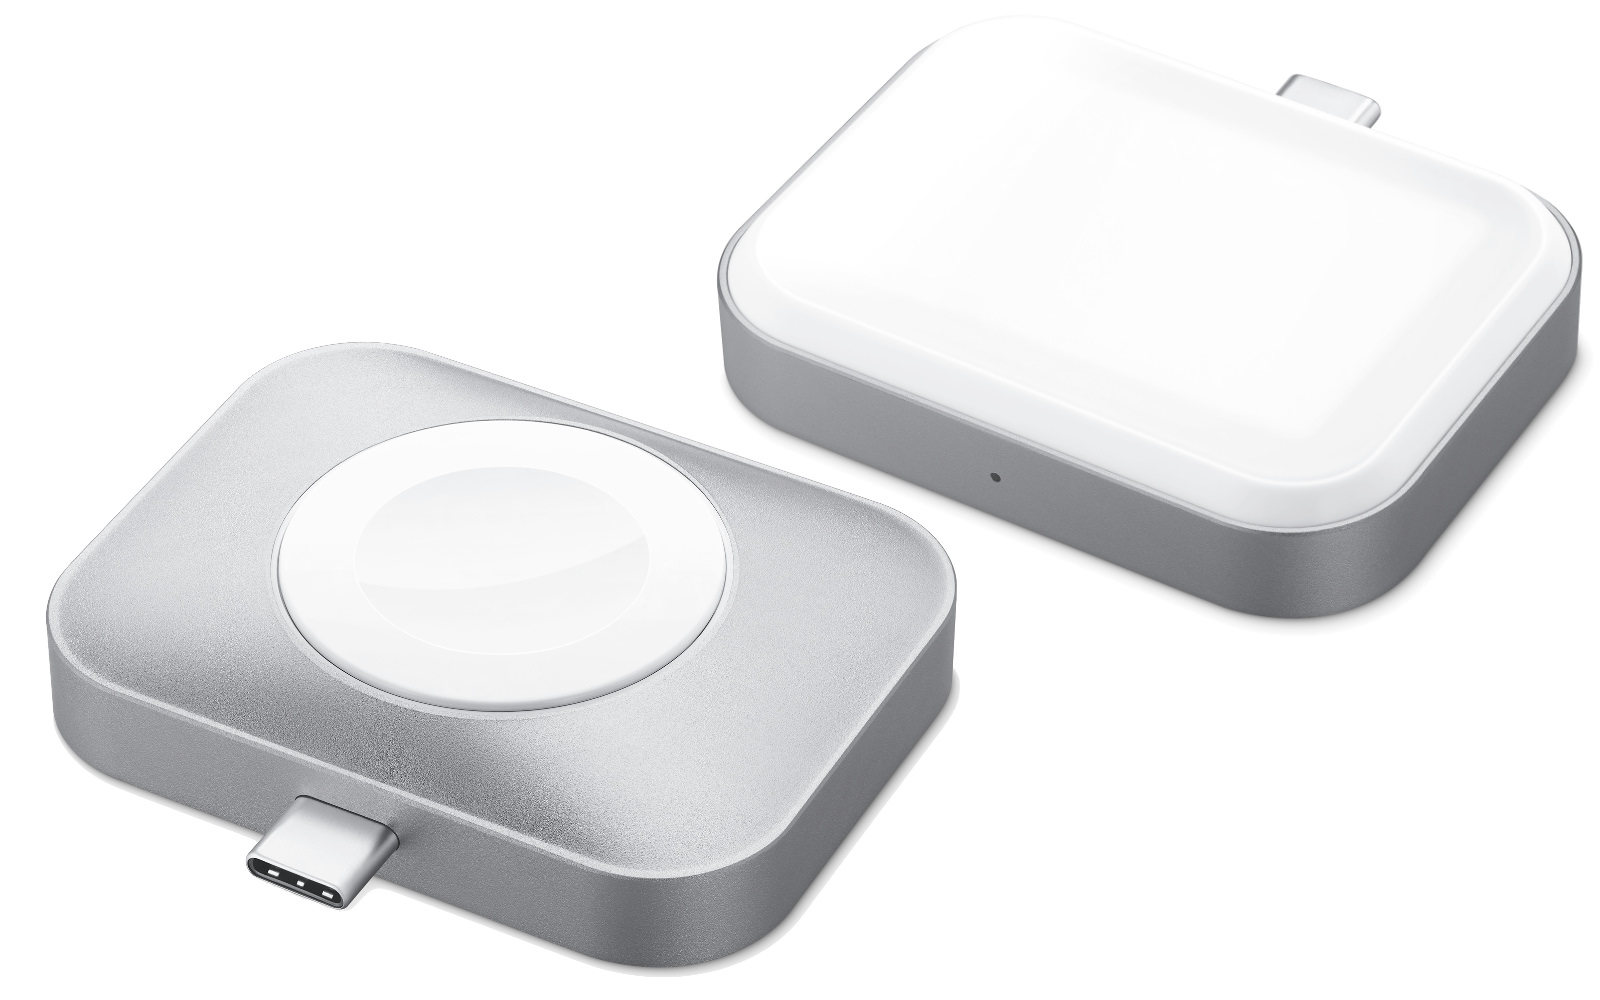 satechi-usb-c-watch-airpods-charger-2.jpg